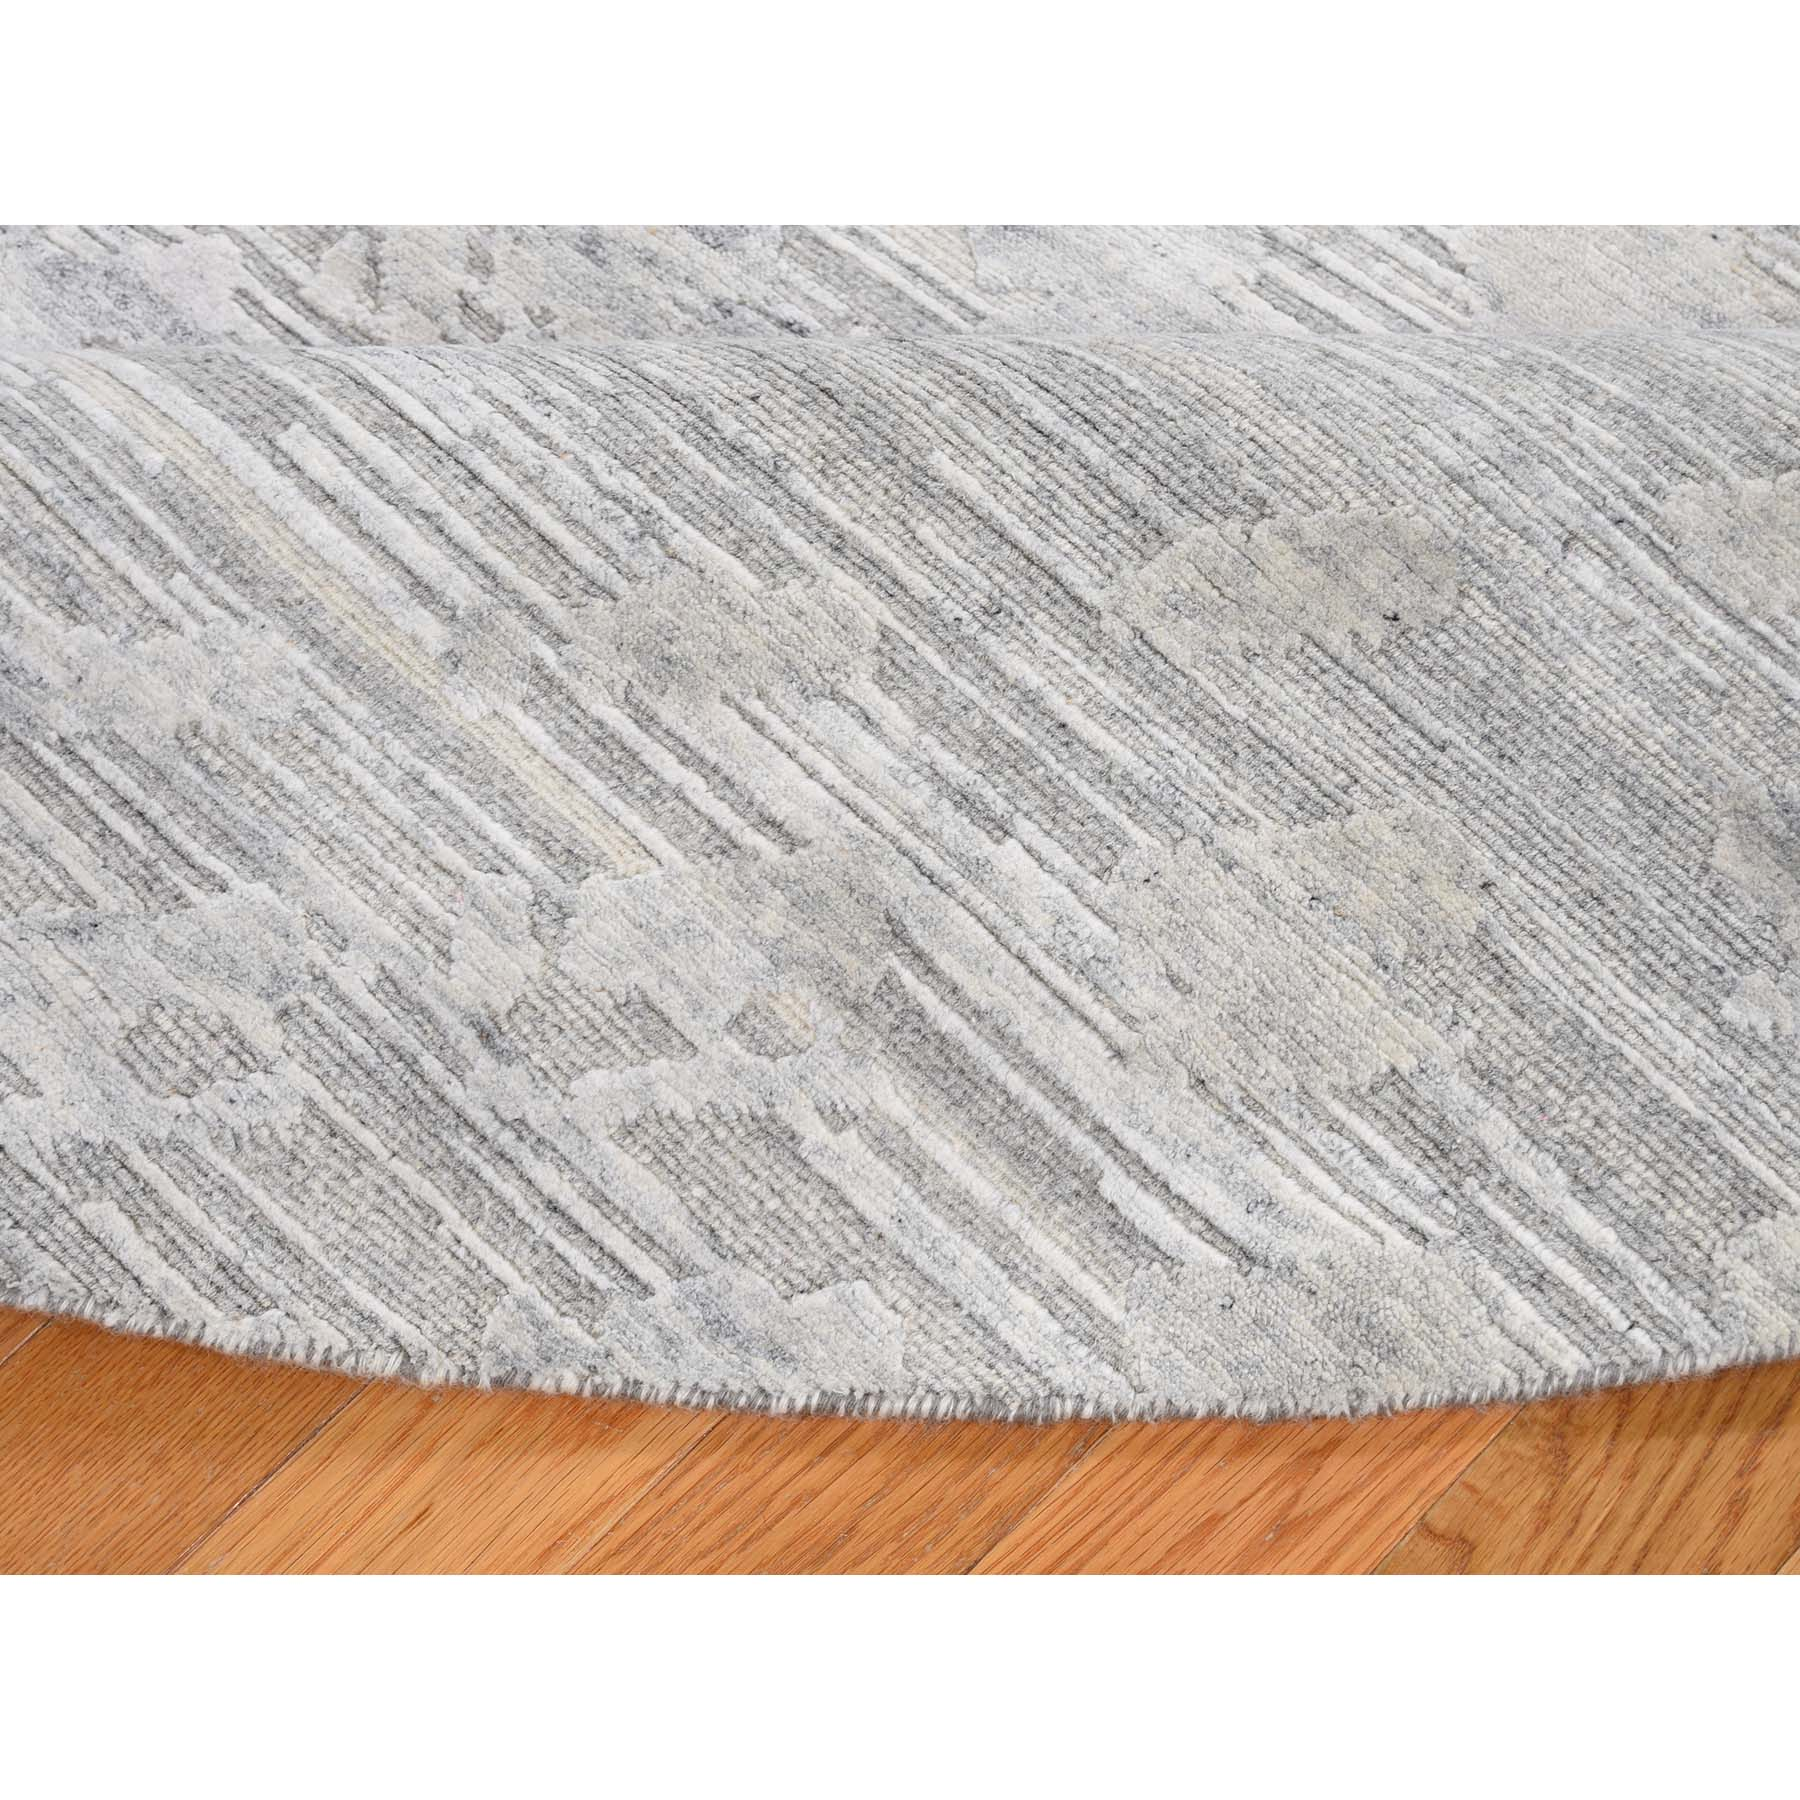 "8'1""x8'1"" Silver Round Hand Spun Undyed Natural Wool Modern Hand-Knotted Oriental Rug"